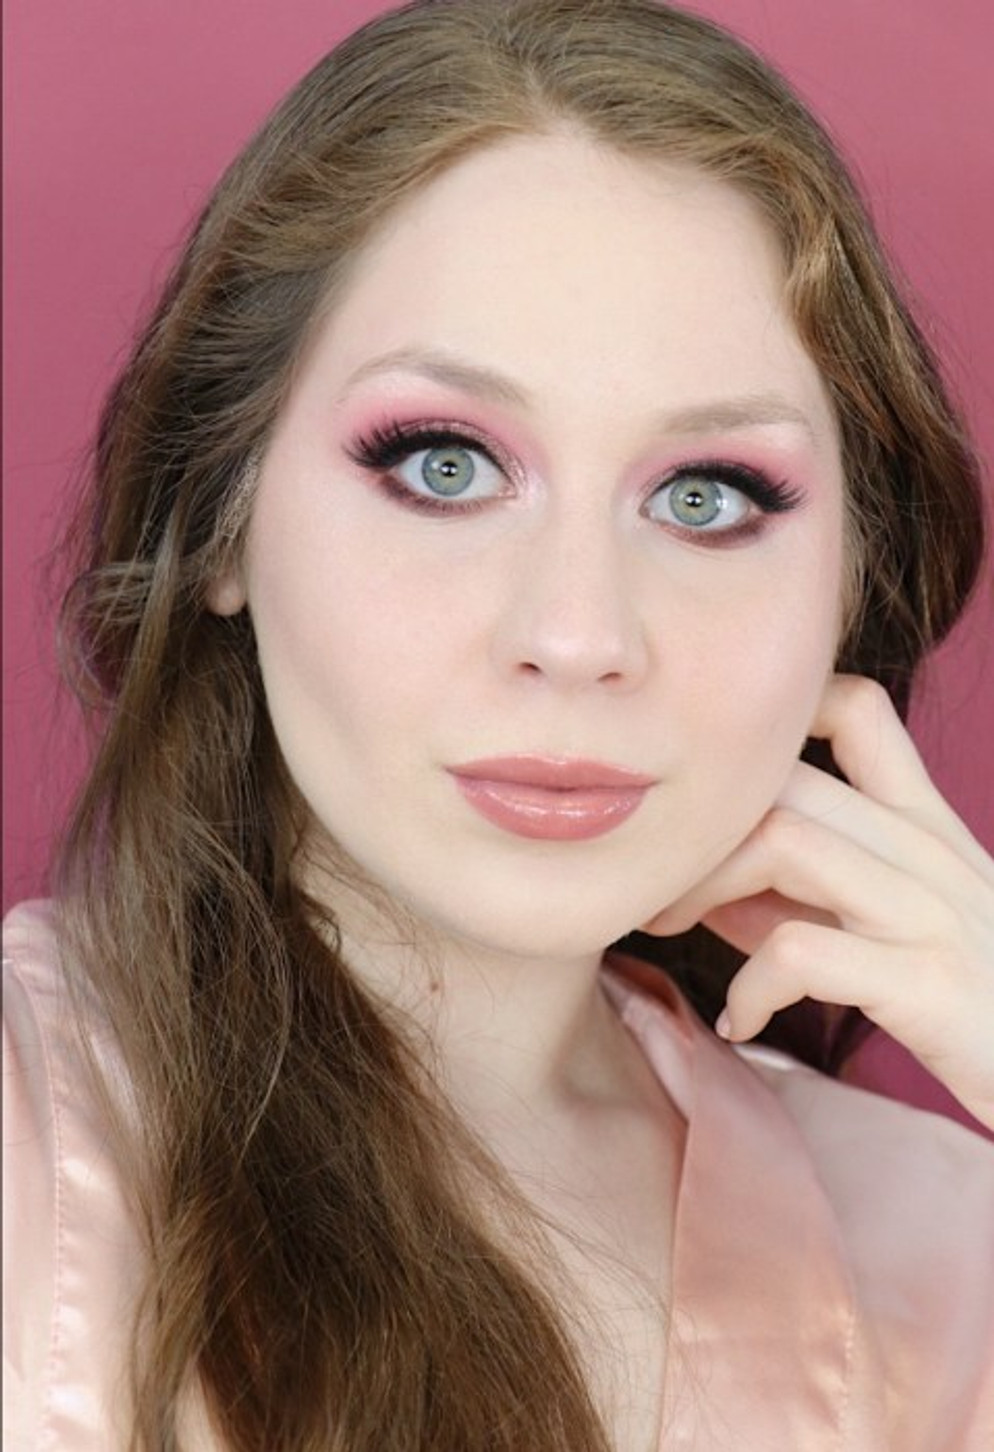 Valentine's Day Glittery Pink Makeup Tutorial 2020 | Lillee Jean